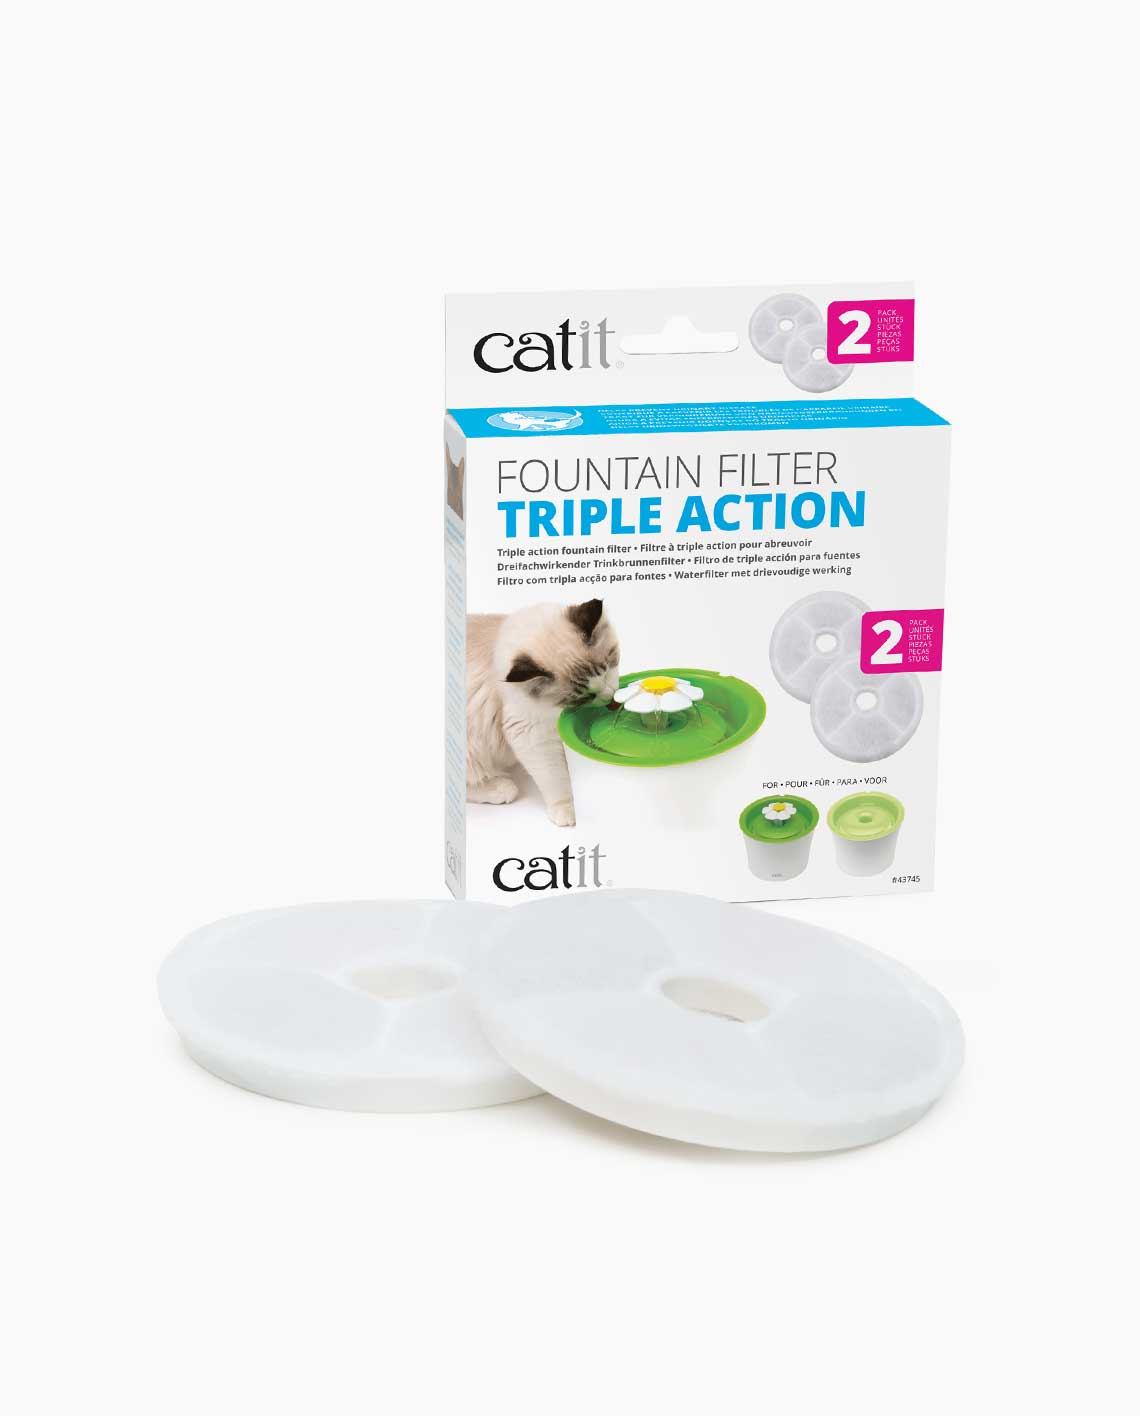 Packaging of a triple action filter